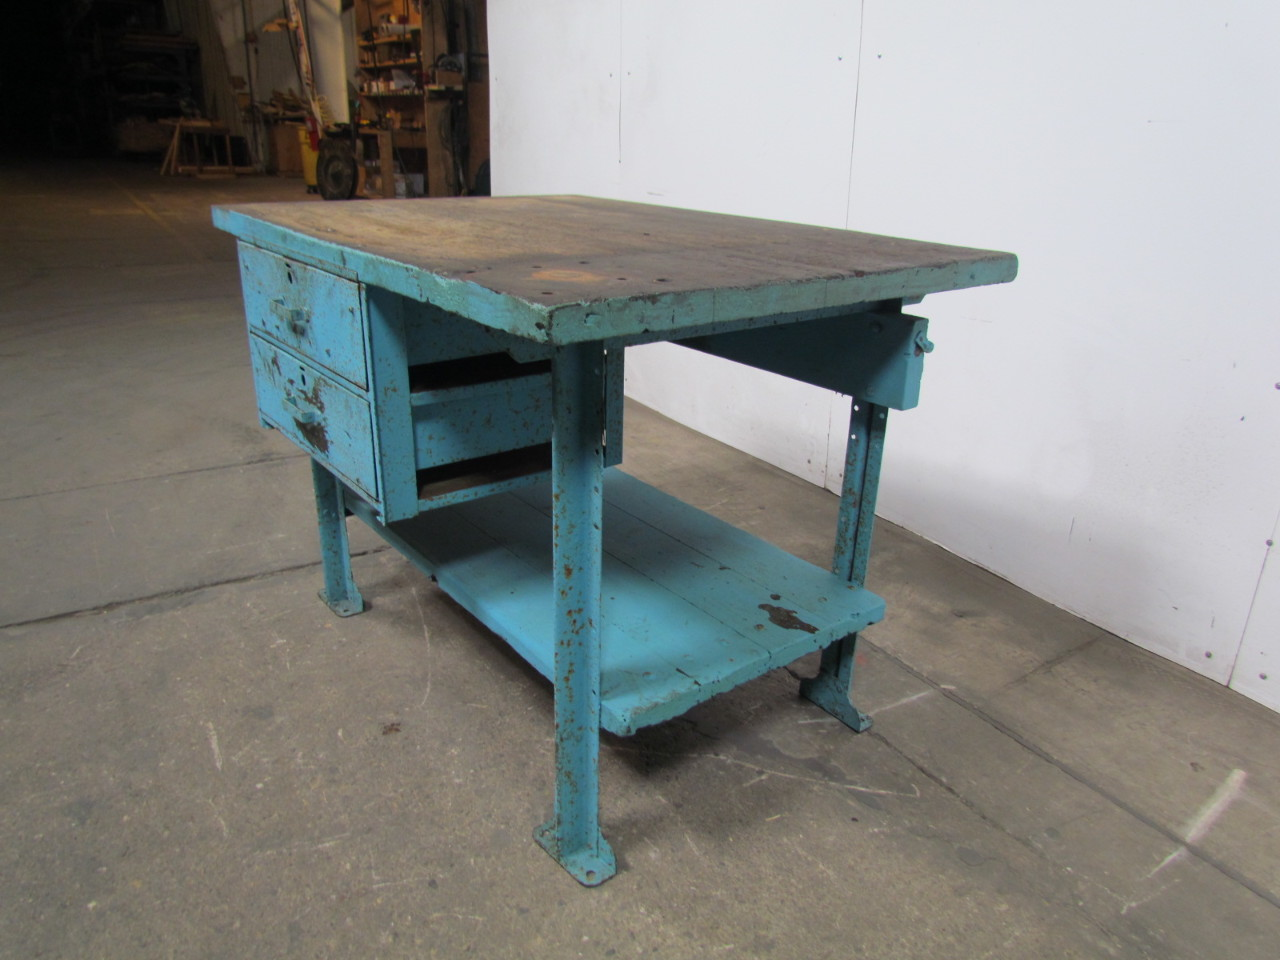 Butcher block workbench industrial table kitchen island 48 x34 1 4 34 tall - Industrial kitchen tables ...